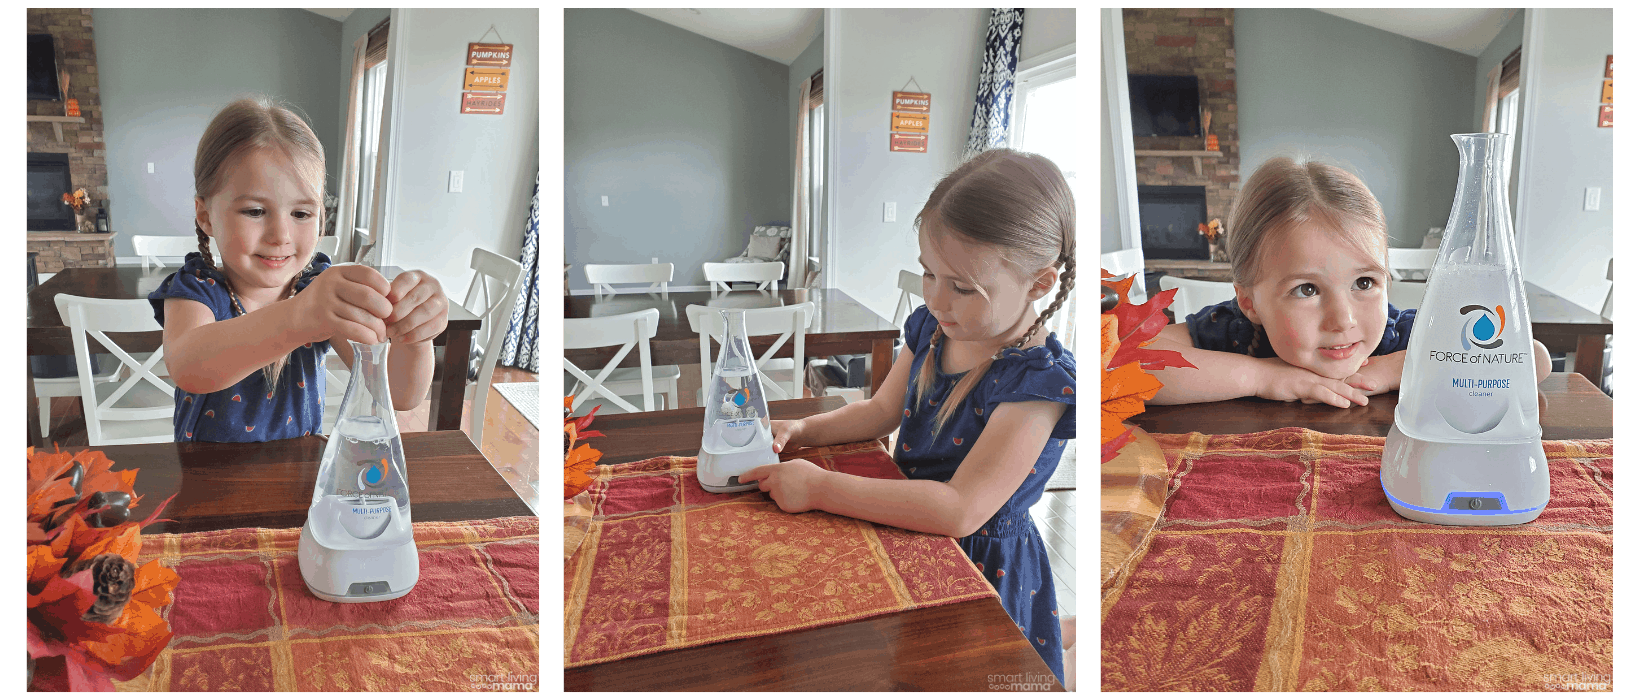 a young girl using Force of Nature cleaning solution in the kitchen